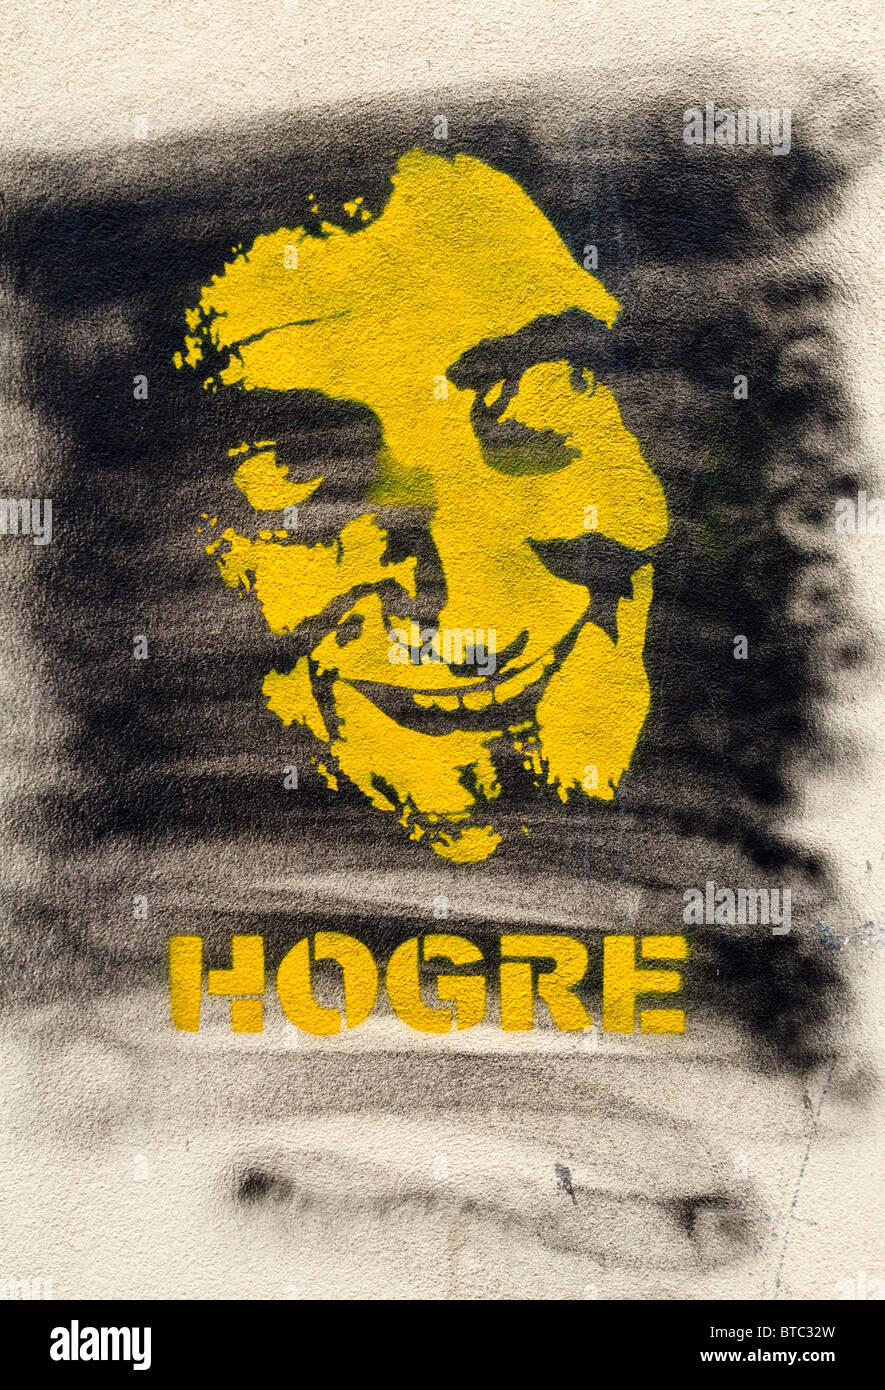 Hogre graffito on a wall in Arezzo, Italy - Stock Image